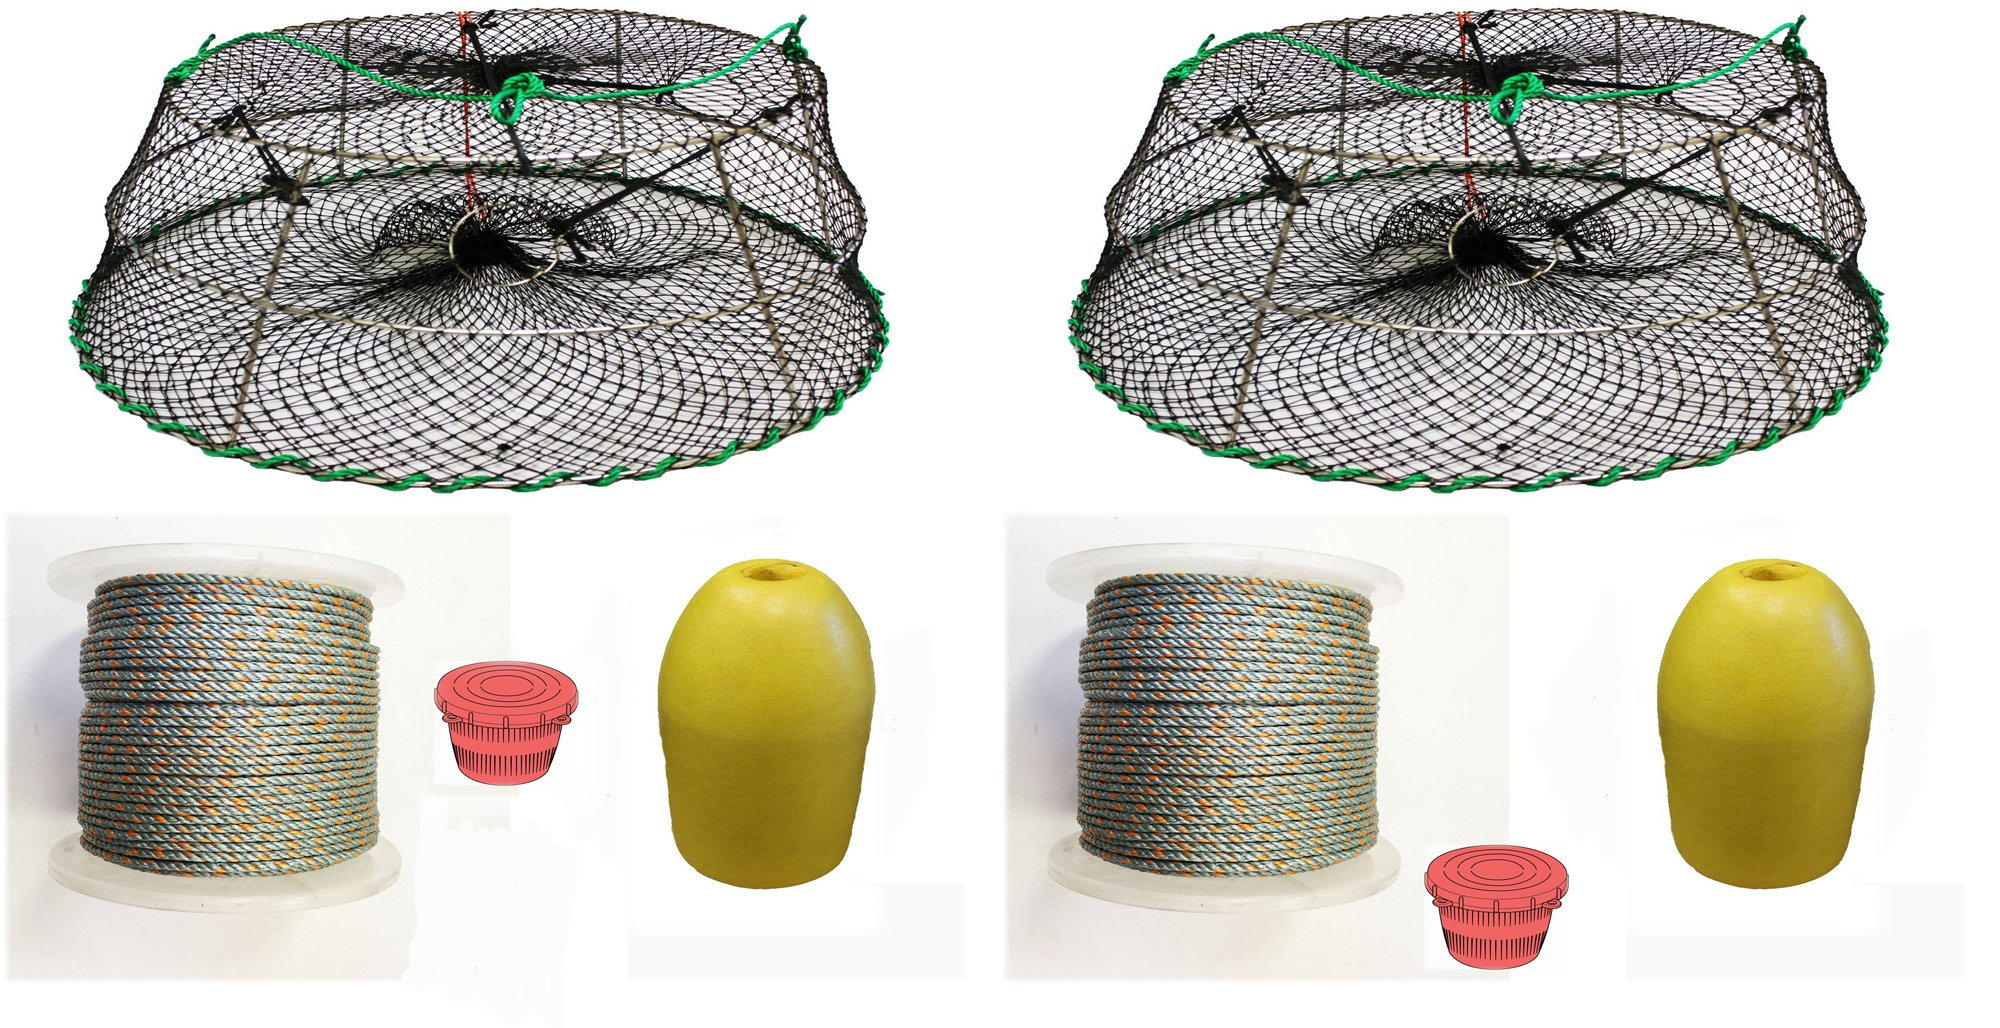 2-Pack of KUFA Sports Tower Style Prawn trap with 400' rope, Yellow float and Vented Bait Jar combo (CT77+PAQ1)X2